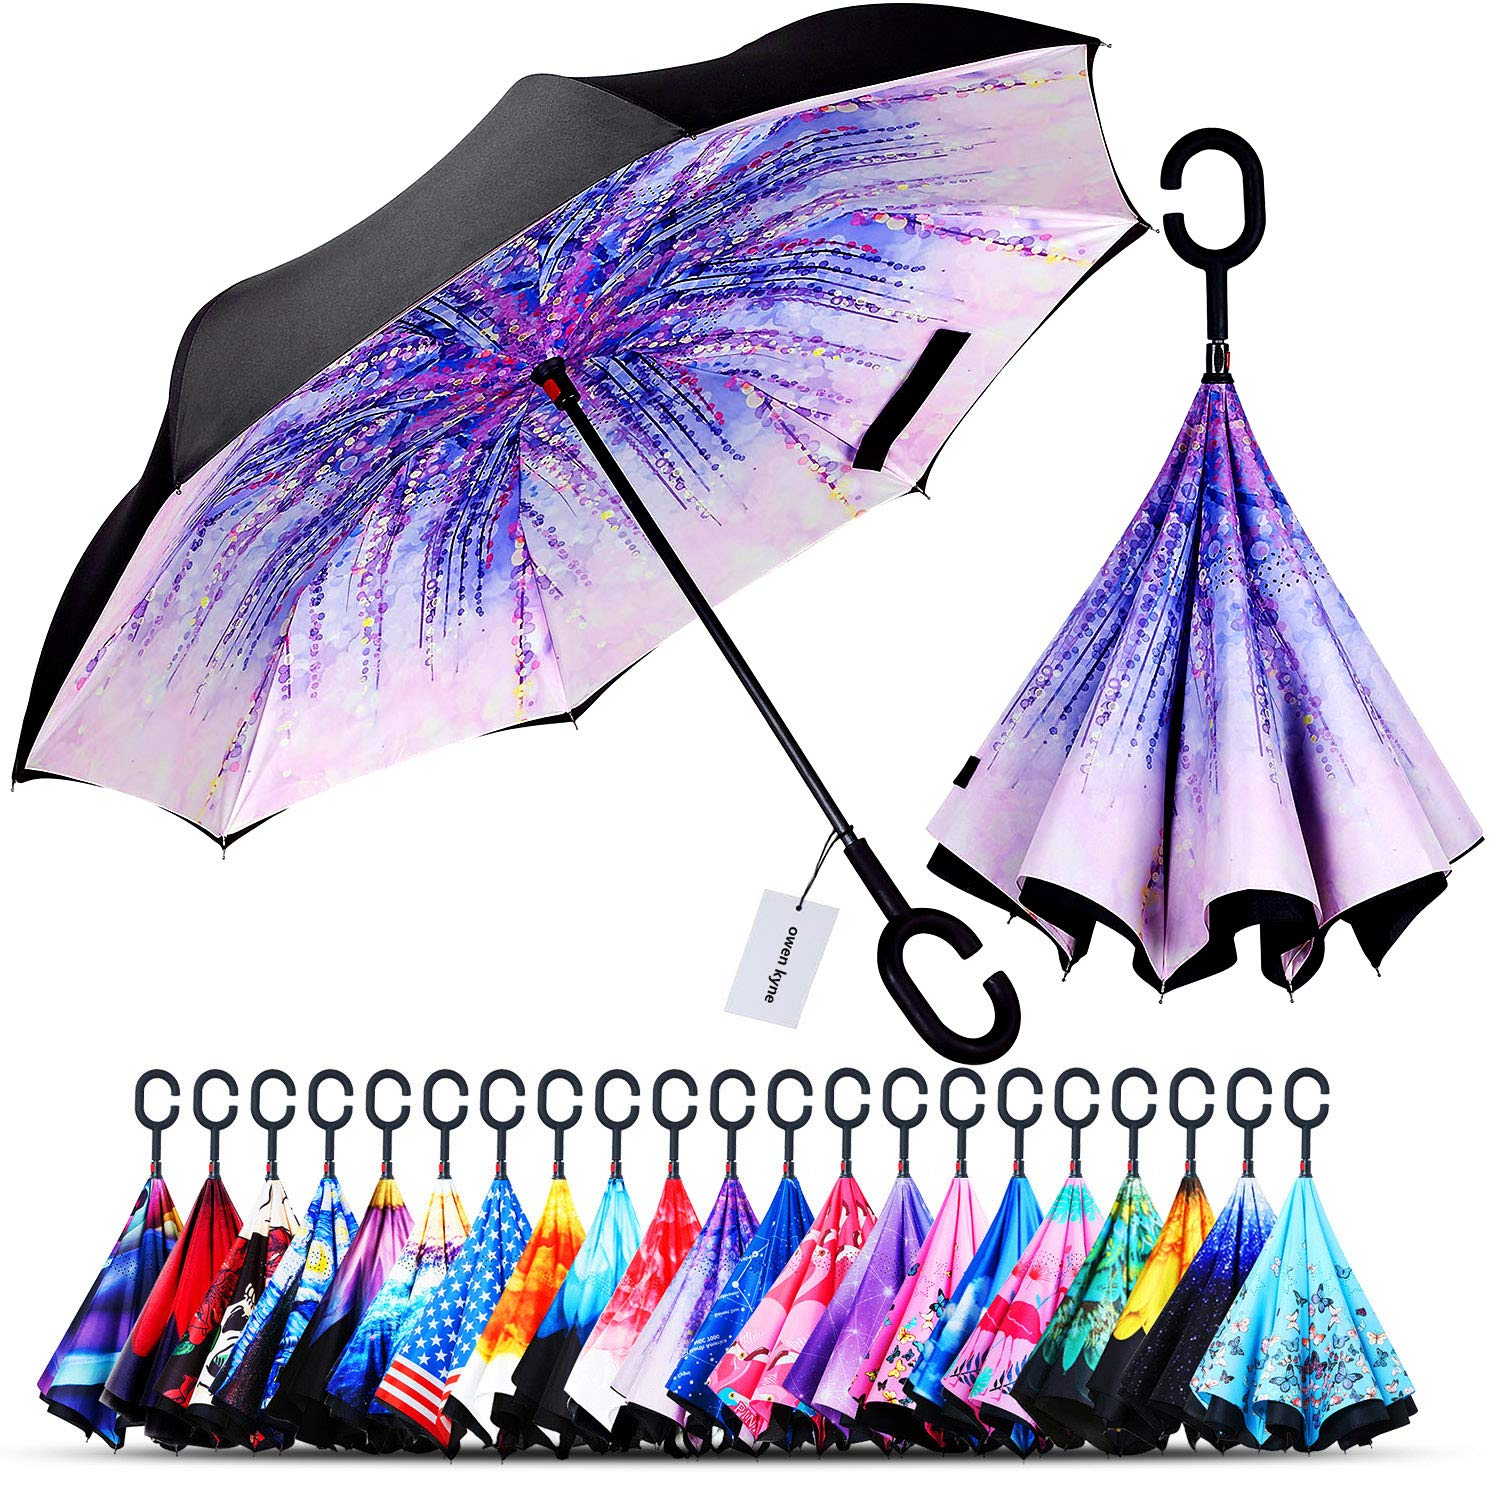 Owen Kyne Windproof Double Layer Folding Inverted Umbrella, Self Stand Upside-Down Rain Protection Car Reverse Umbrellas with C-Shaped Handle (Wisteria Tree) by Owen Kyne